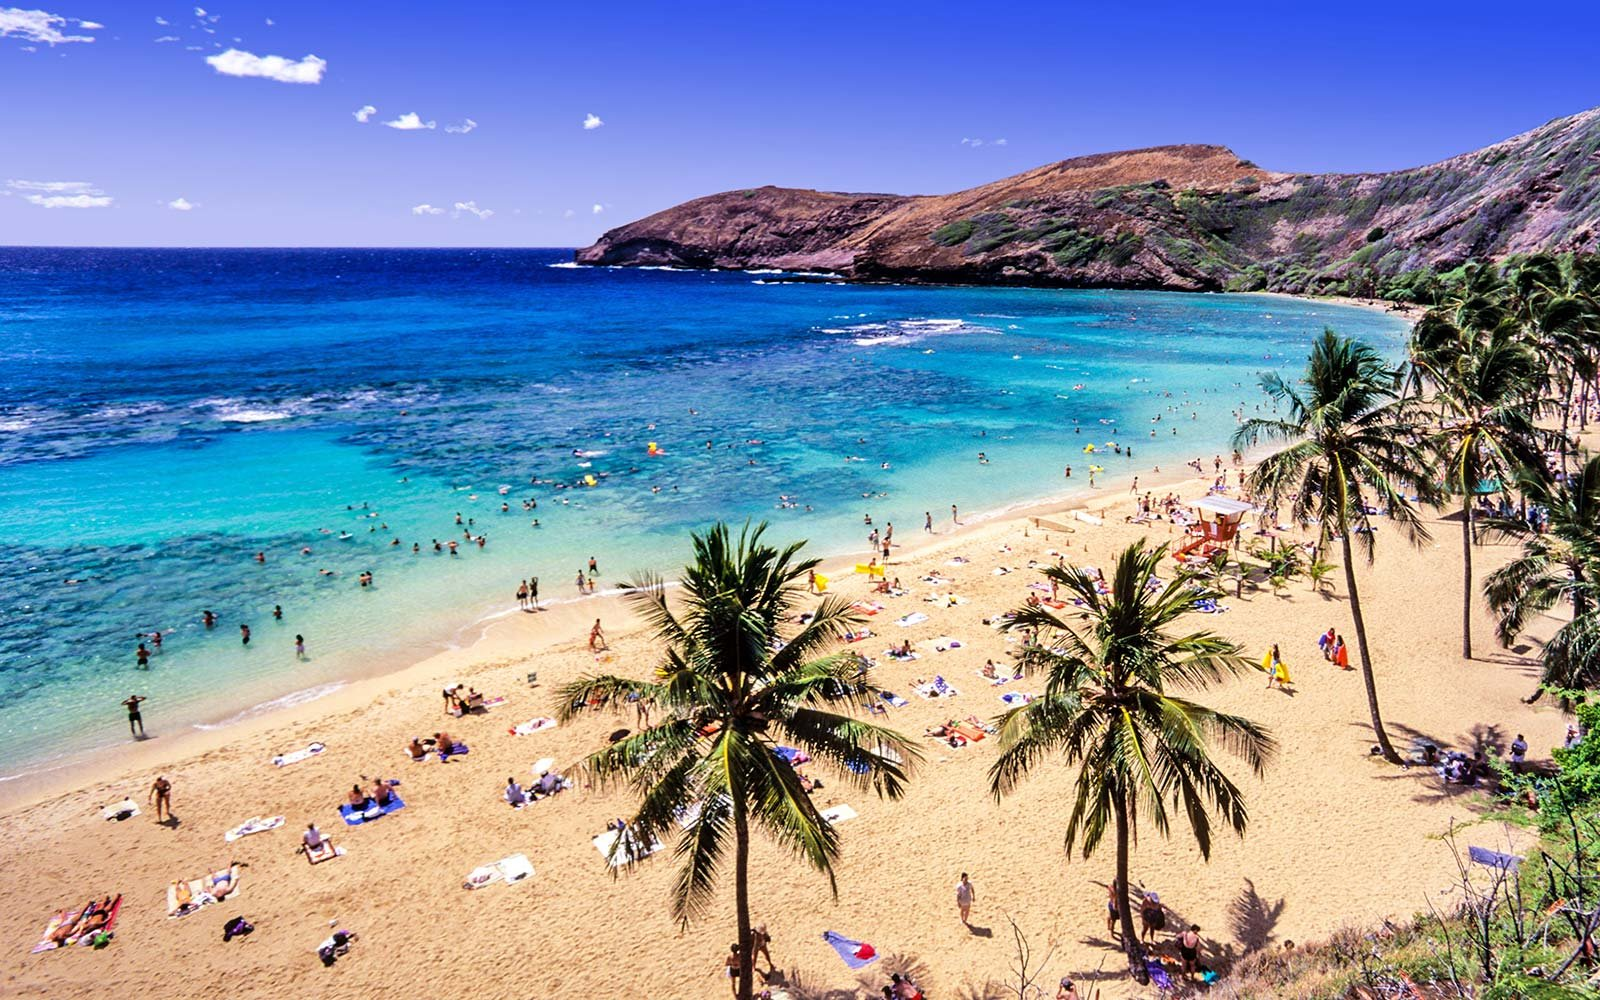 USA, Hawaii, Oahu, Hanauma Bay Nature Preserve, a Nature Preserve and a